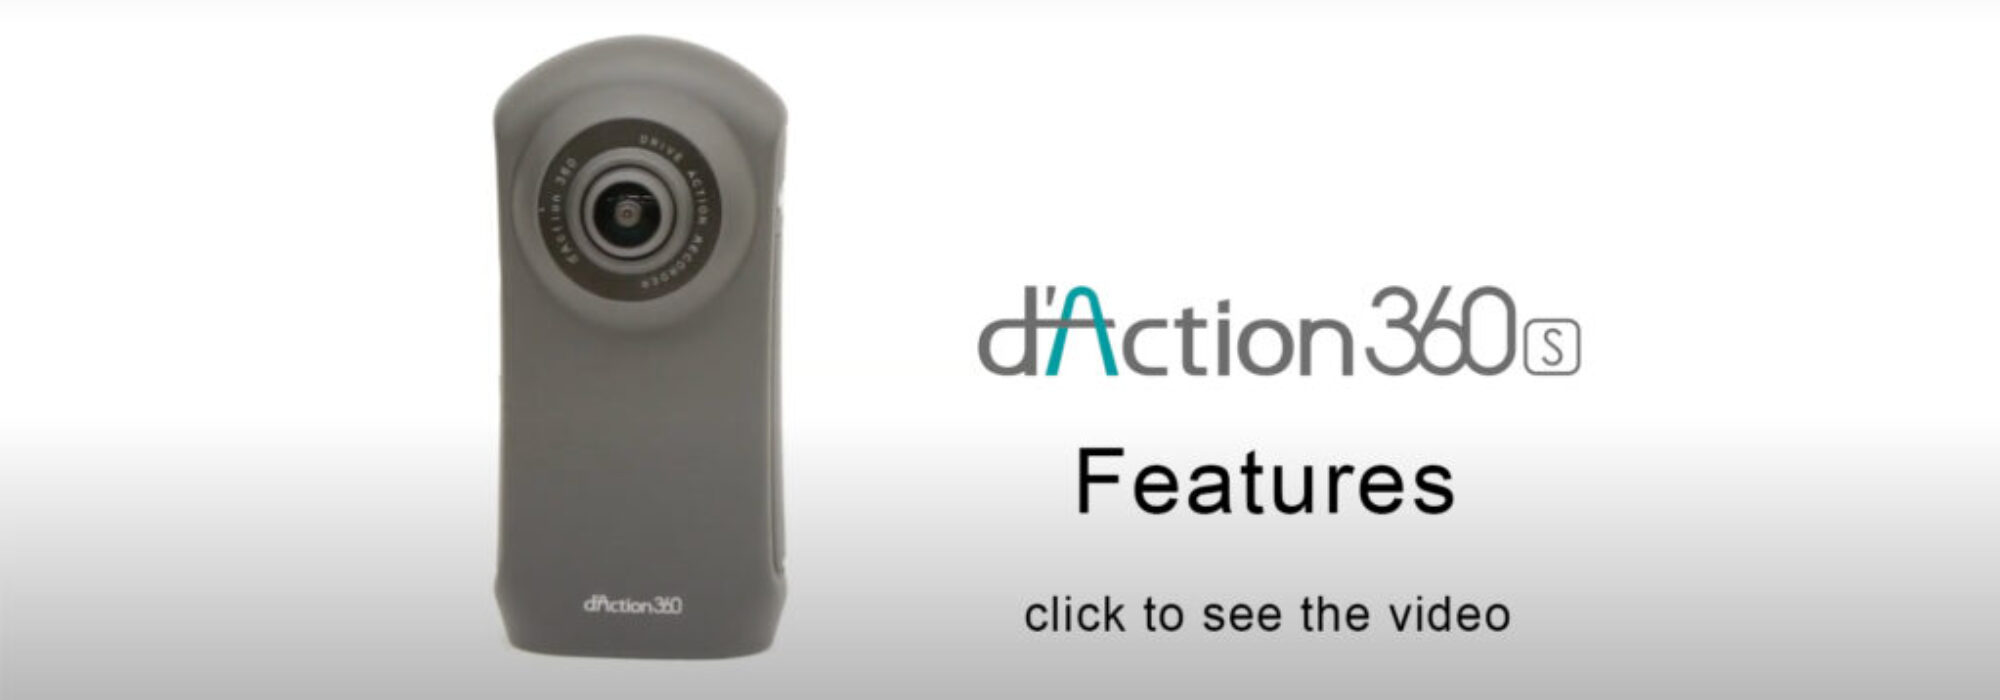 dAction 360S video banner top page